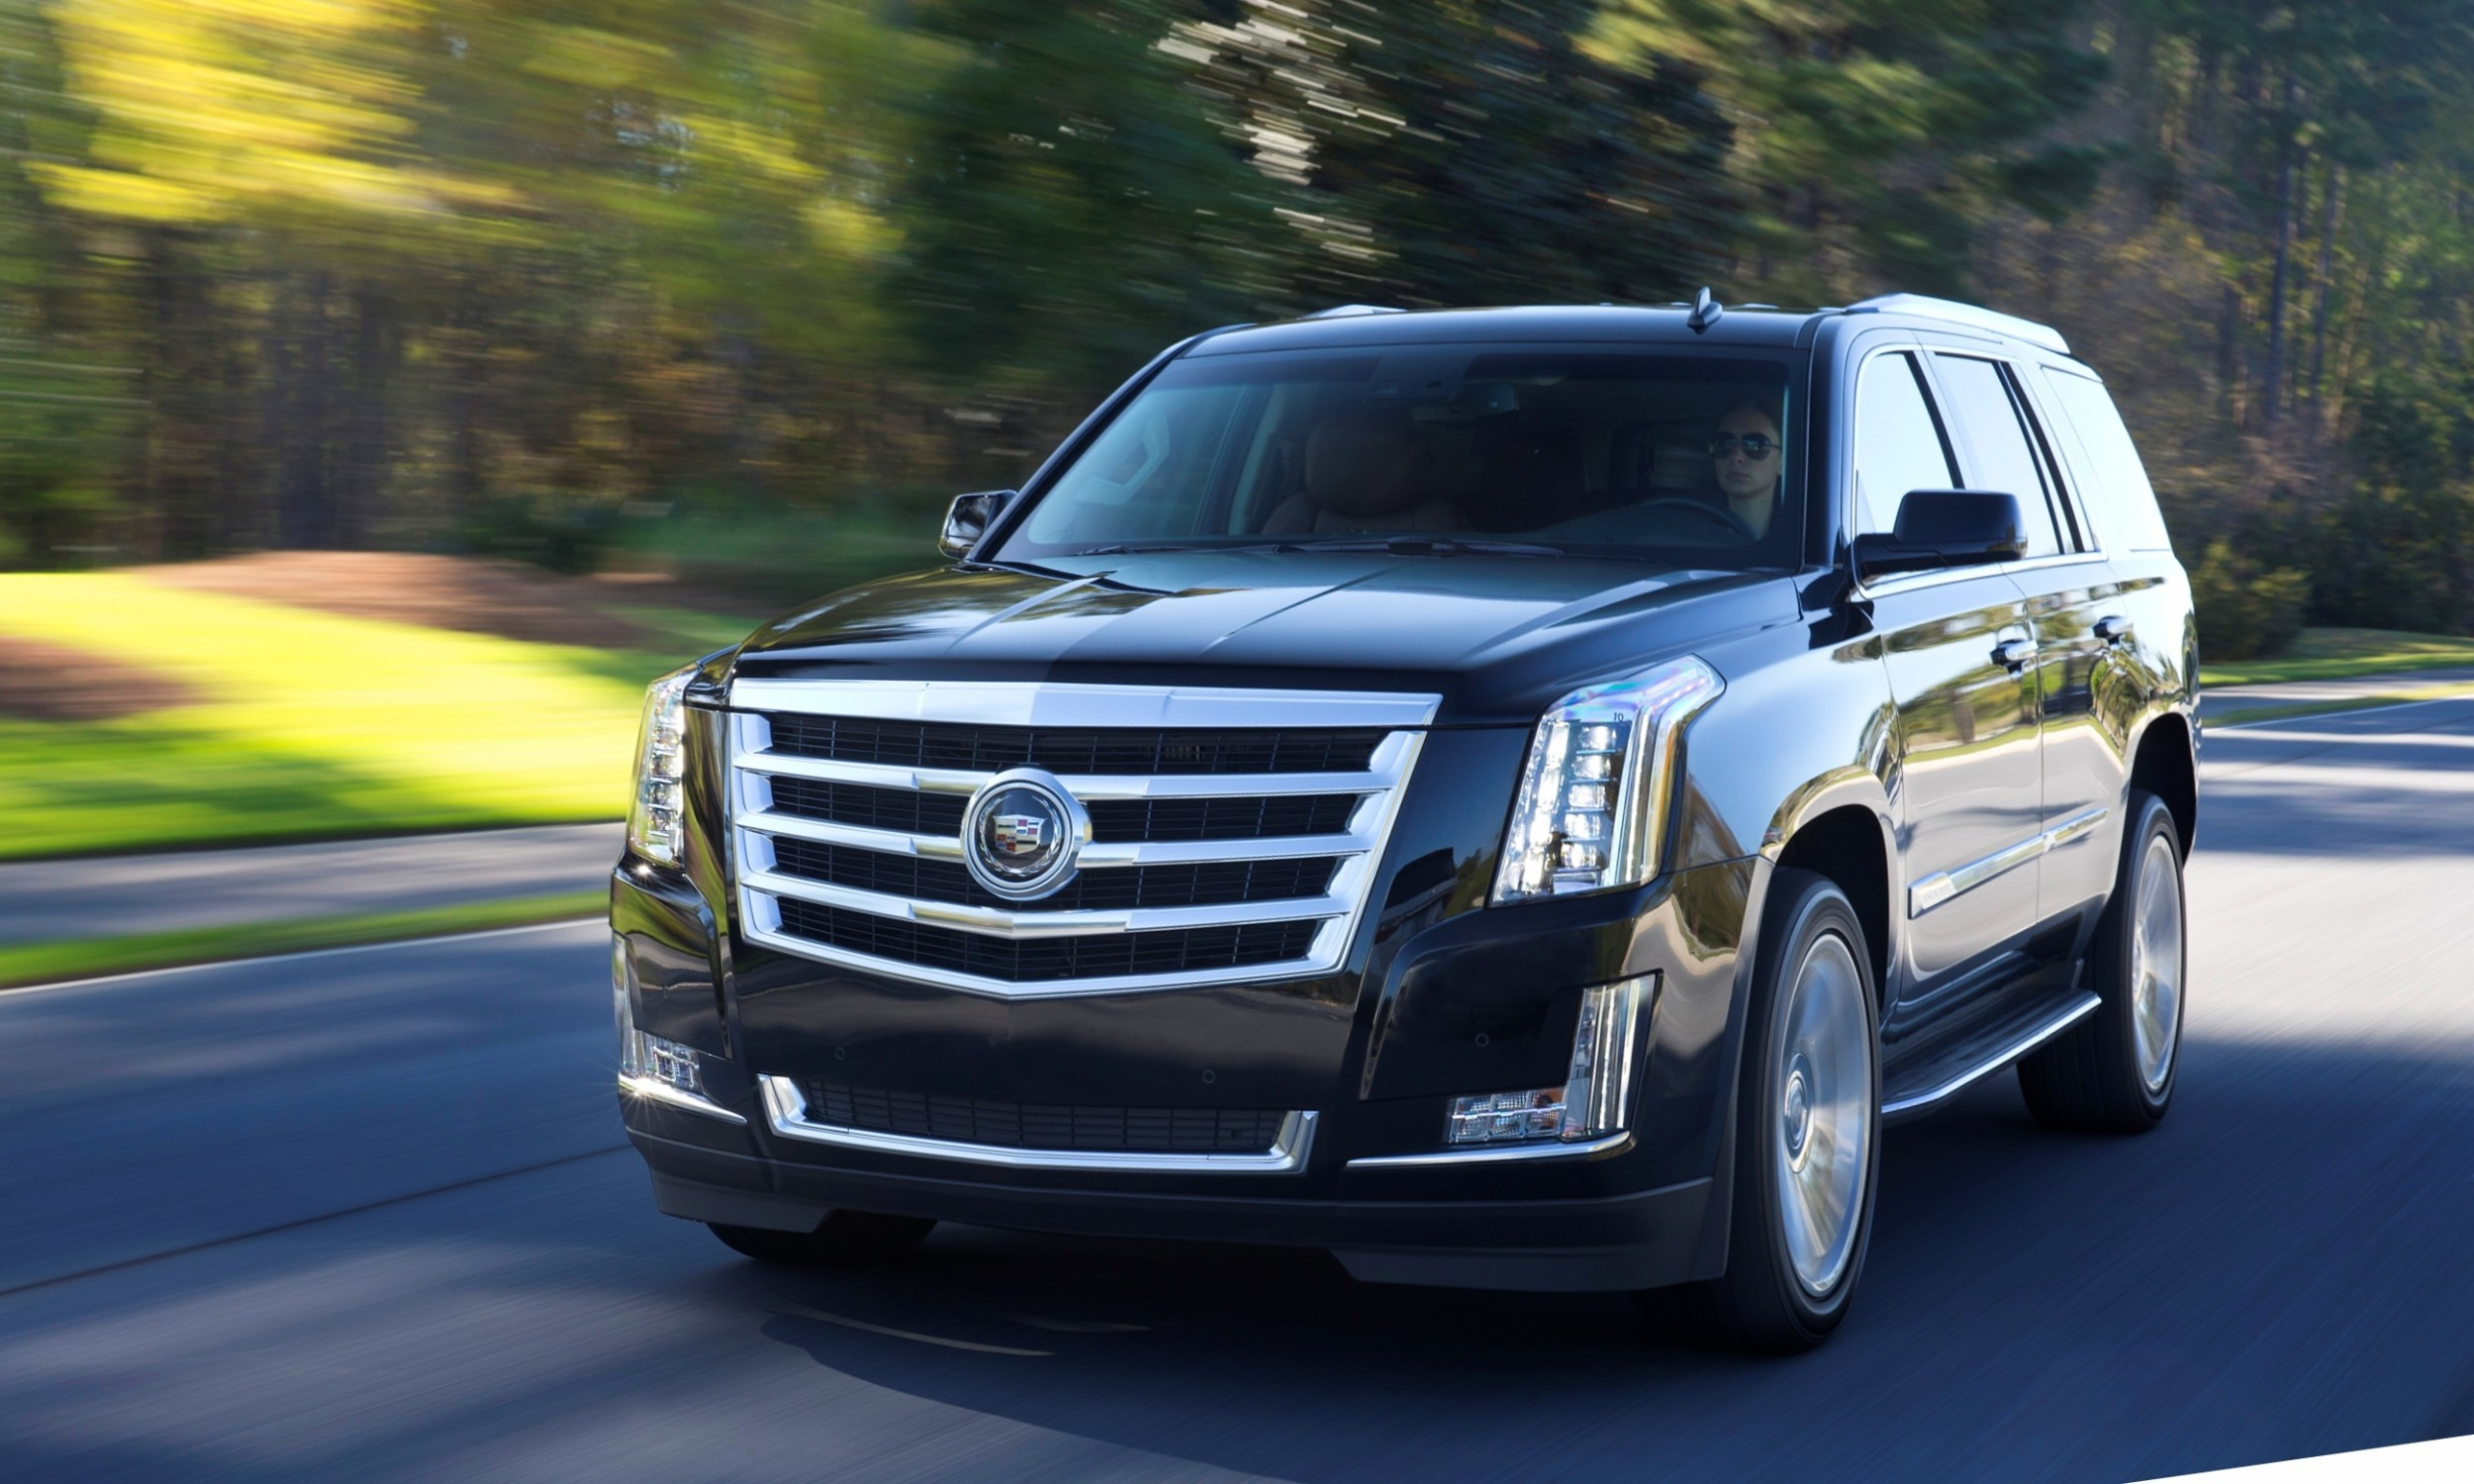 Escalade Cadillac 2015 Updated With Real-Life...